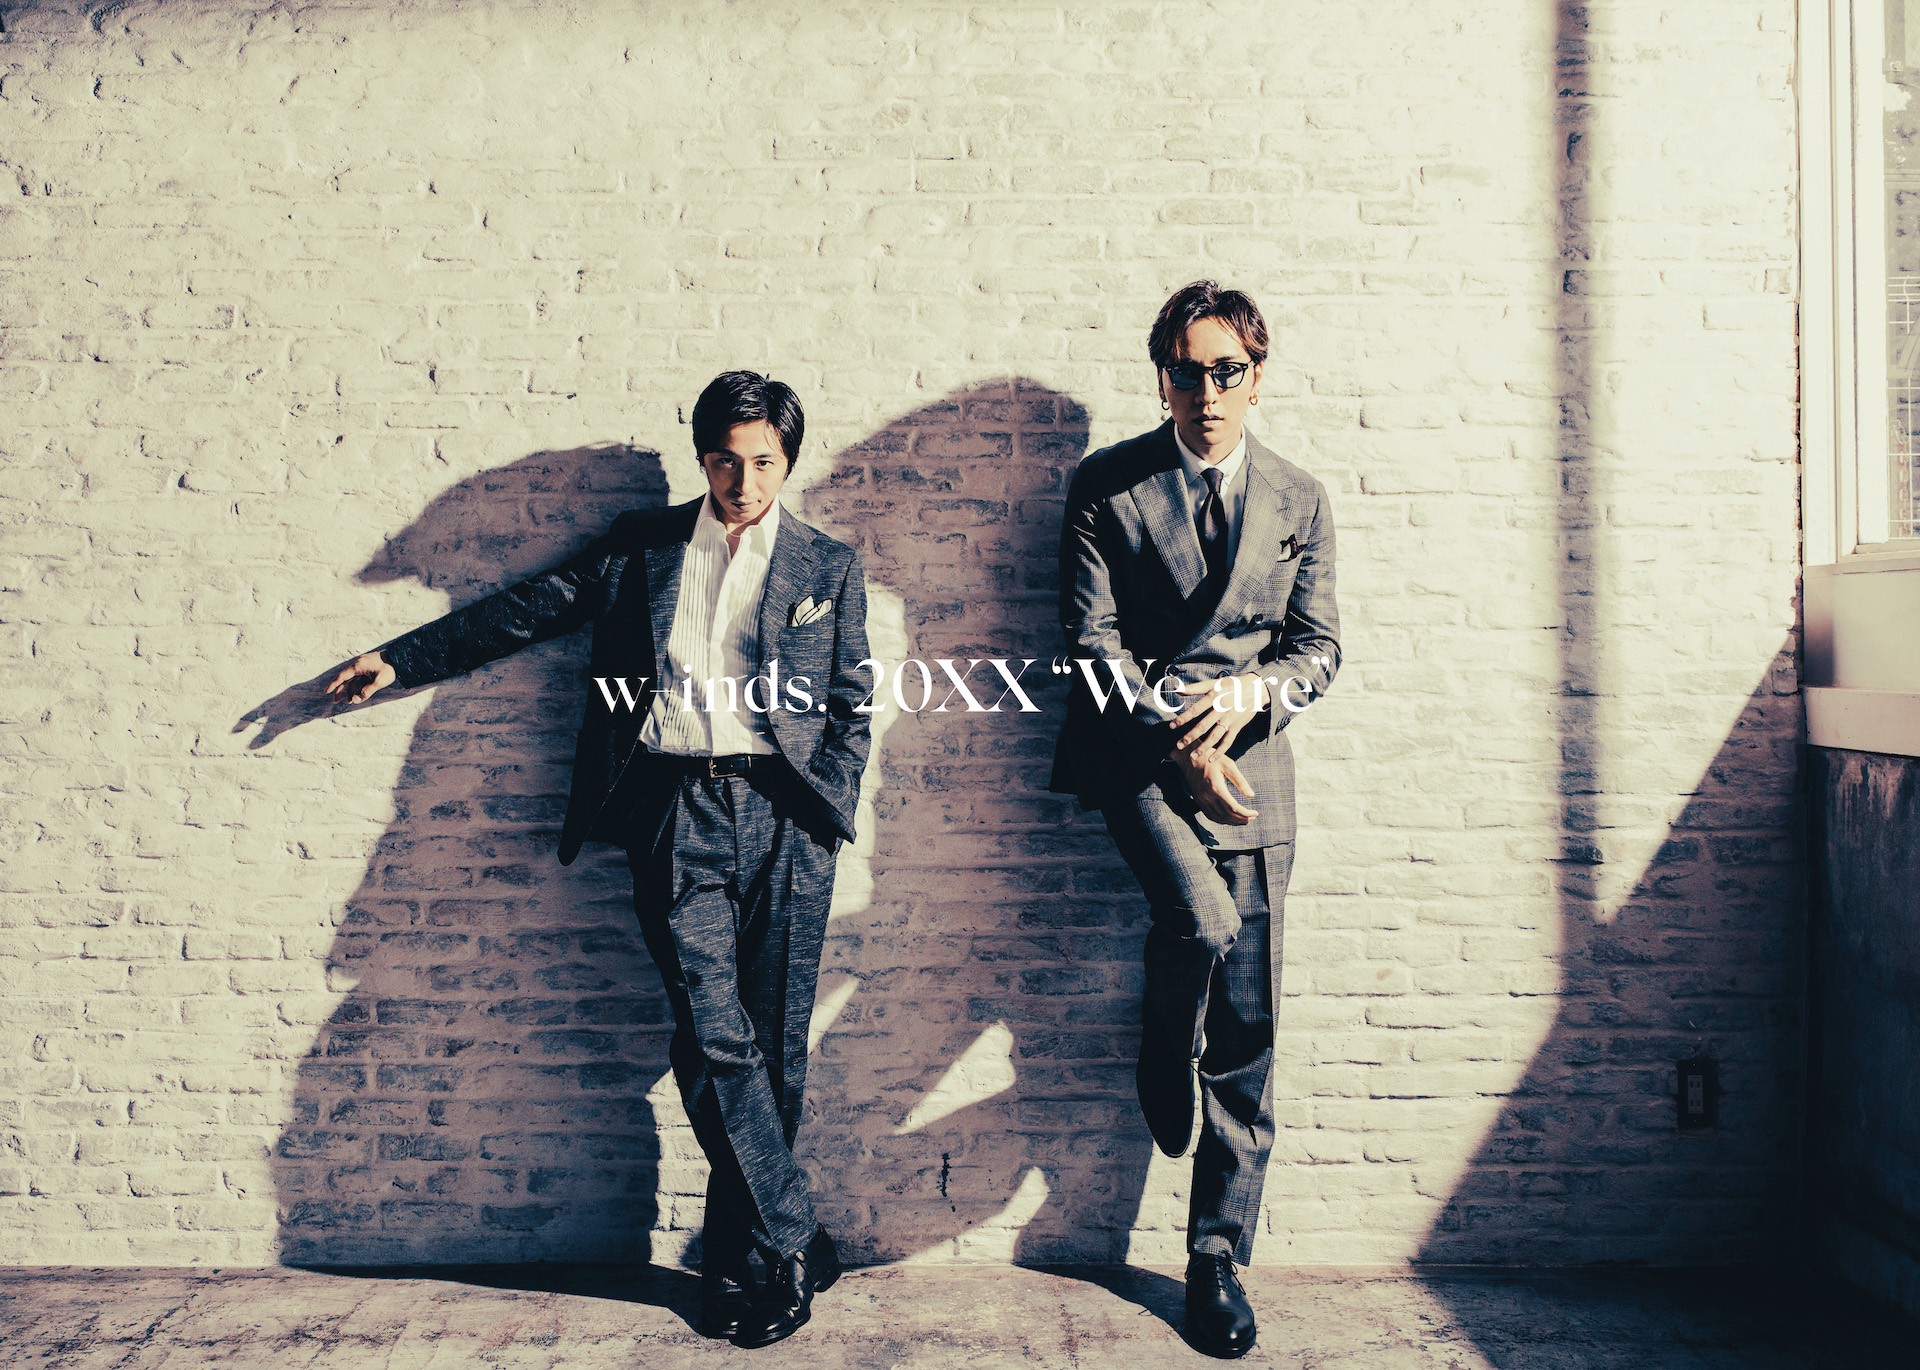 """【Ponycanyon Online Completely Limited Special Box Edition】w-inds. Album 20XX""""We are"""" (CD+Blu-ray+PHOTOBOOK+20XX""""THE BEST""""INSTRUMENTAL CD)Release in November 24th 2021"""